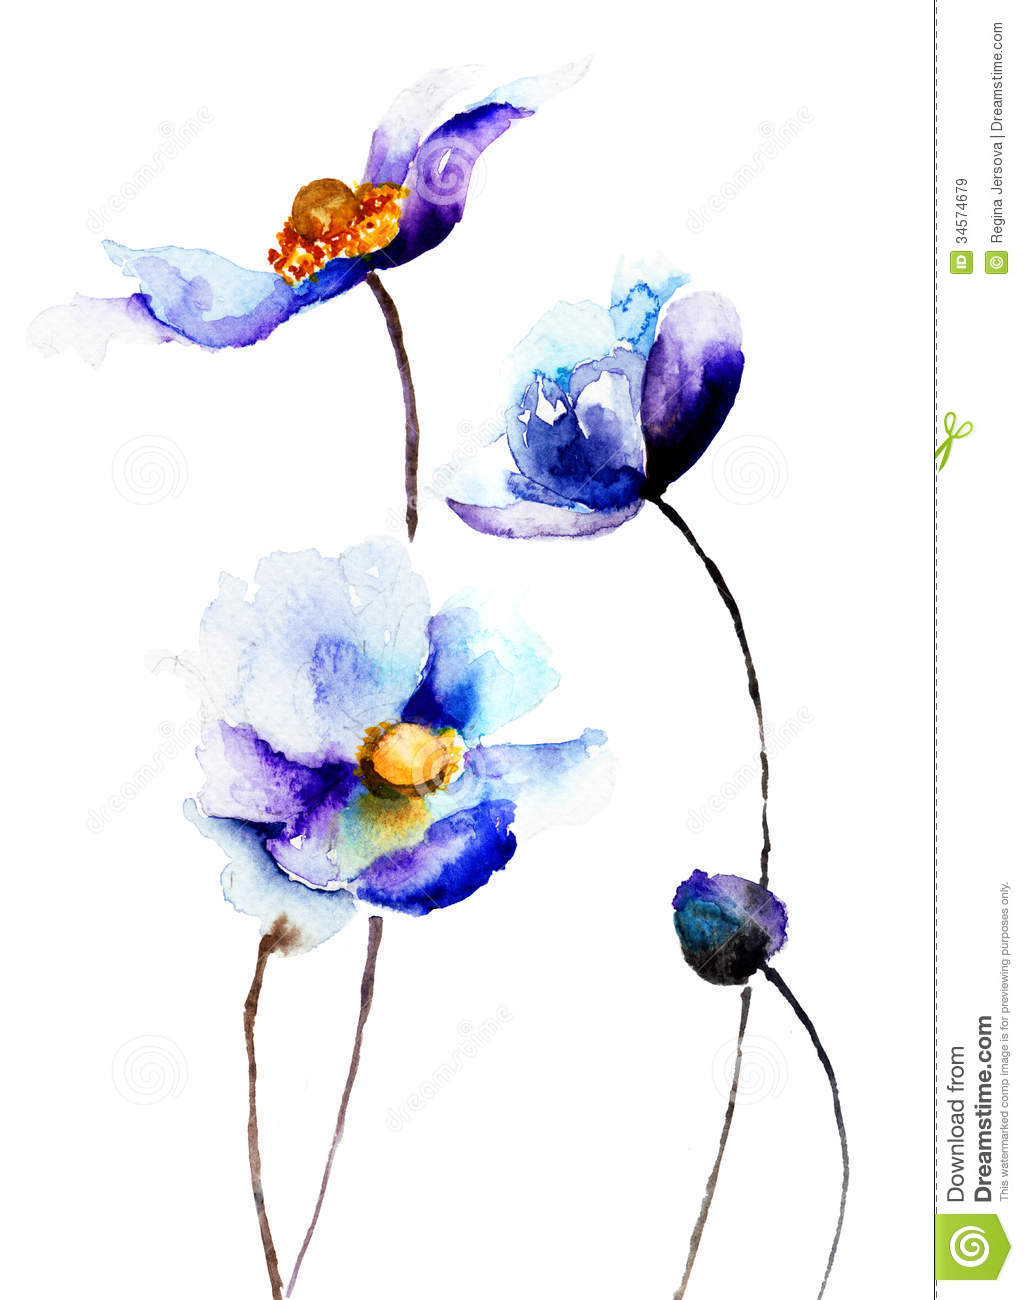 Spring flowers royalty free stock images image 34574679 for Spring flowers watercolor